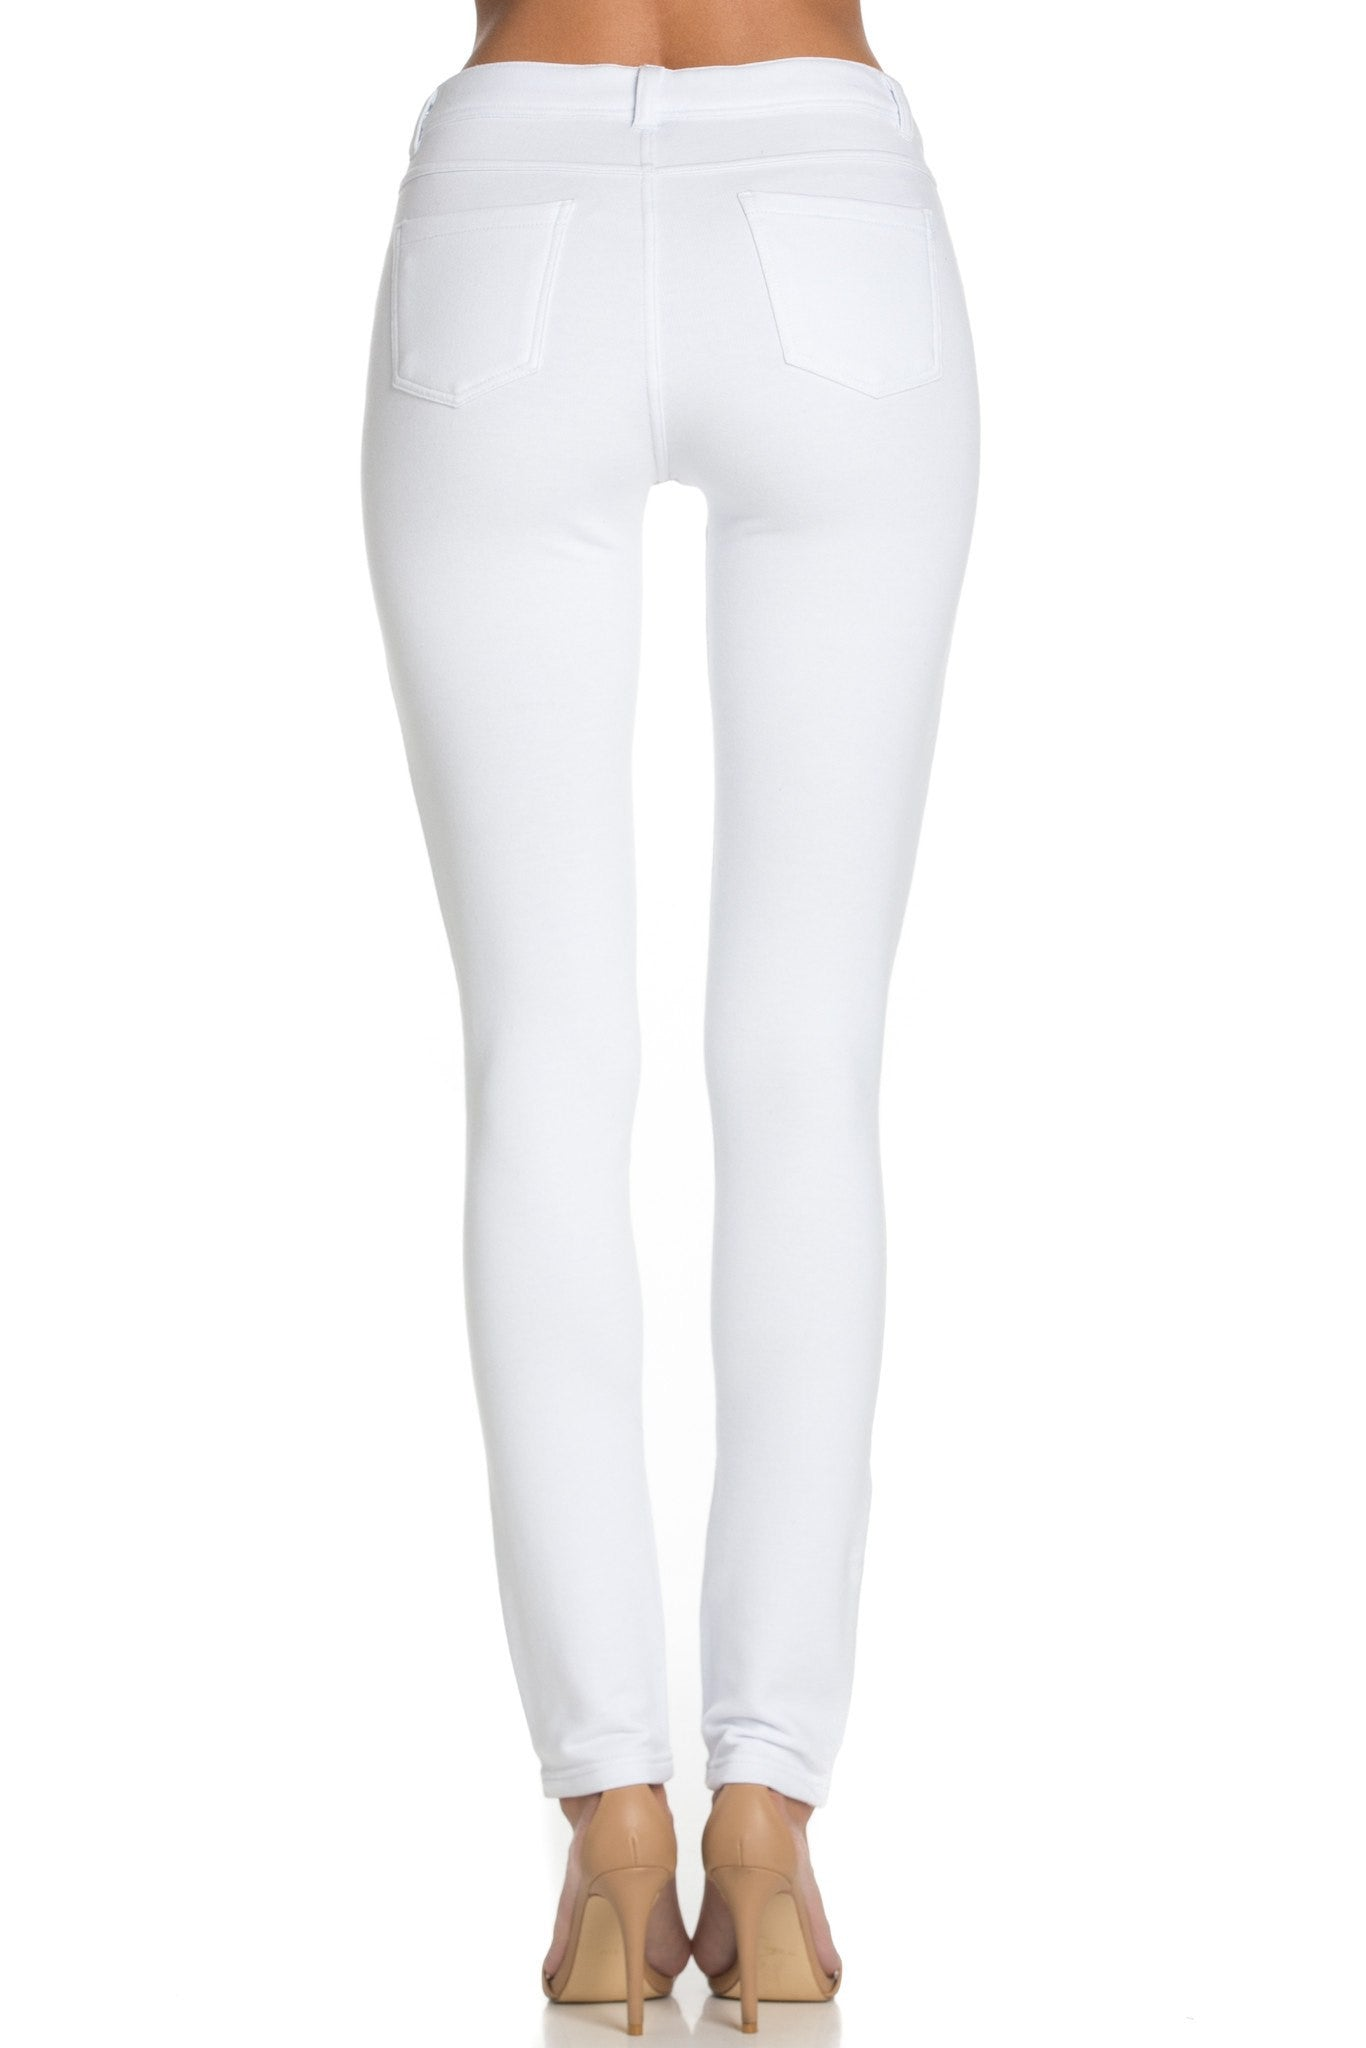 Stretch Skinny Knit Jegging Pants (White) - Poplooks